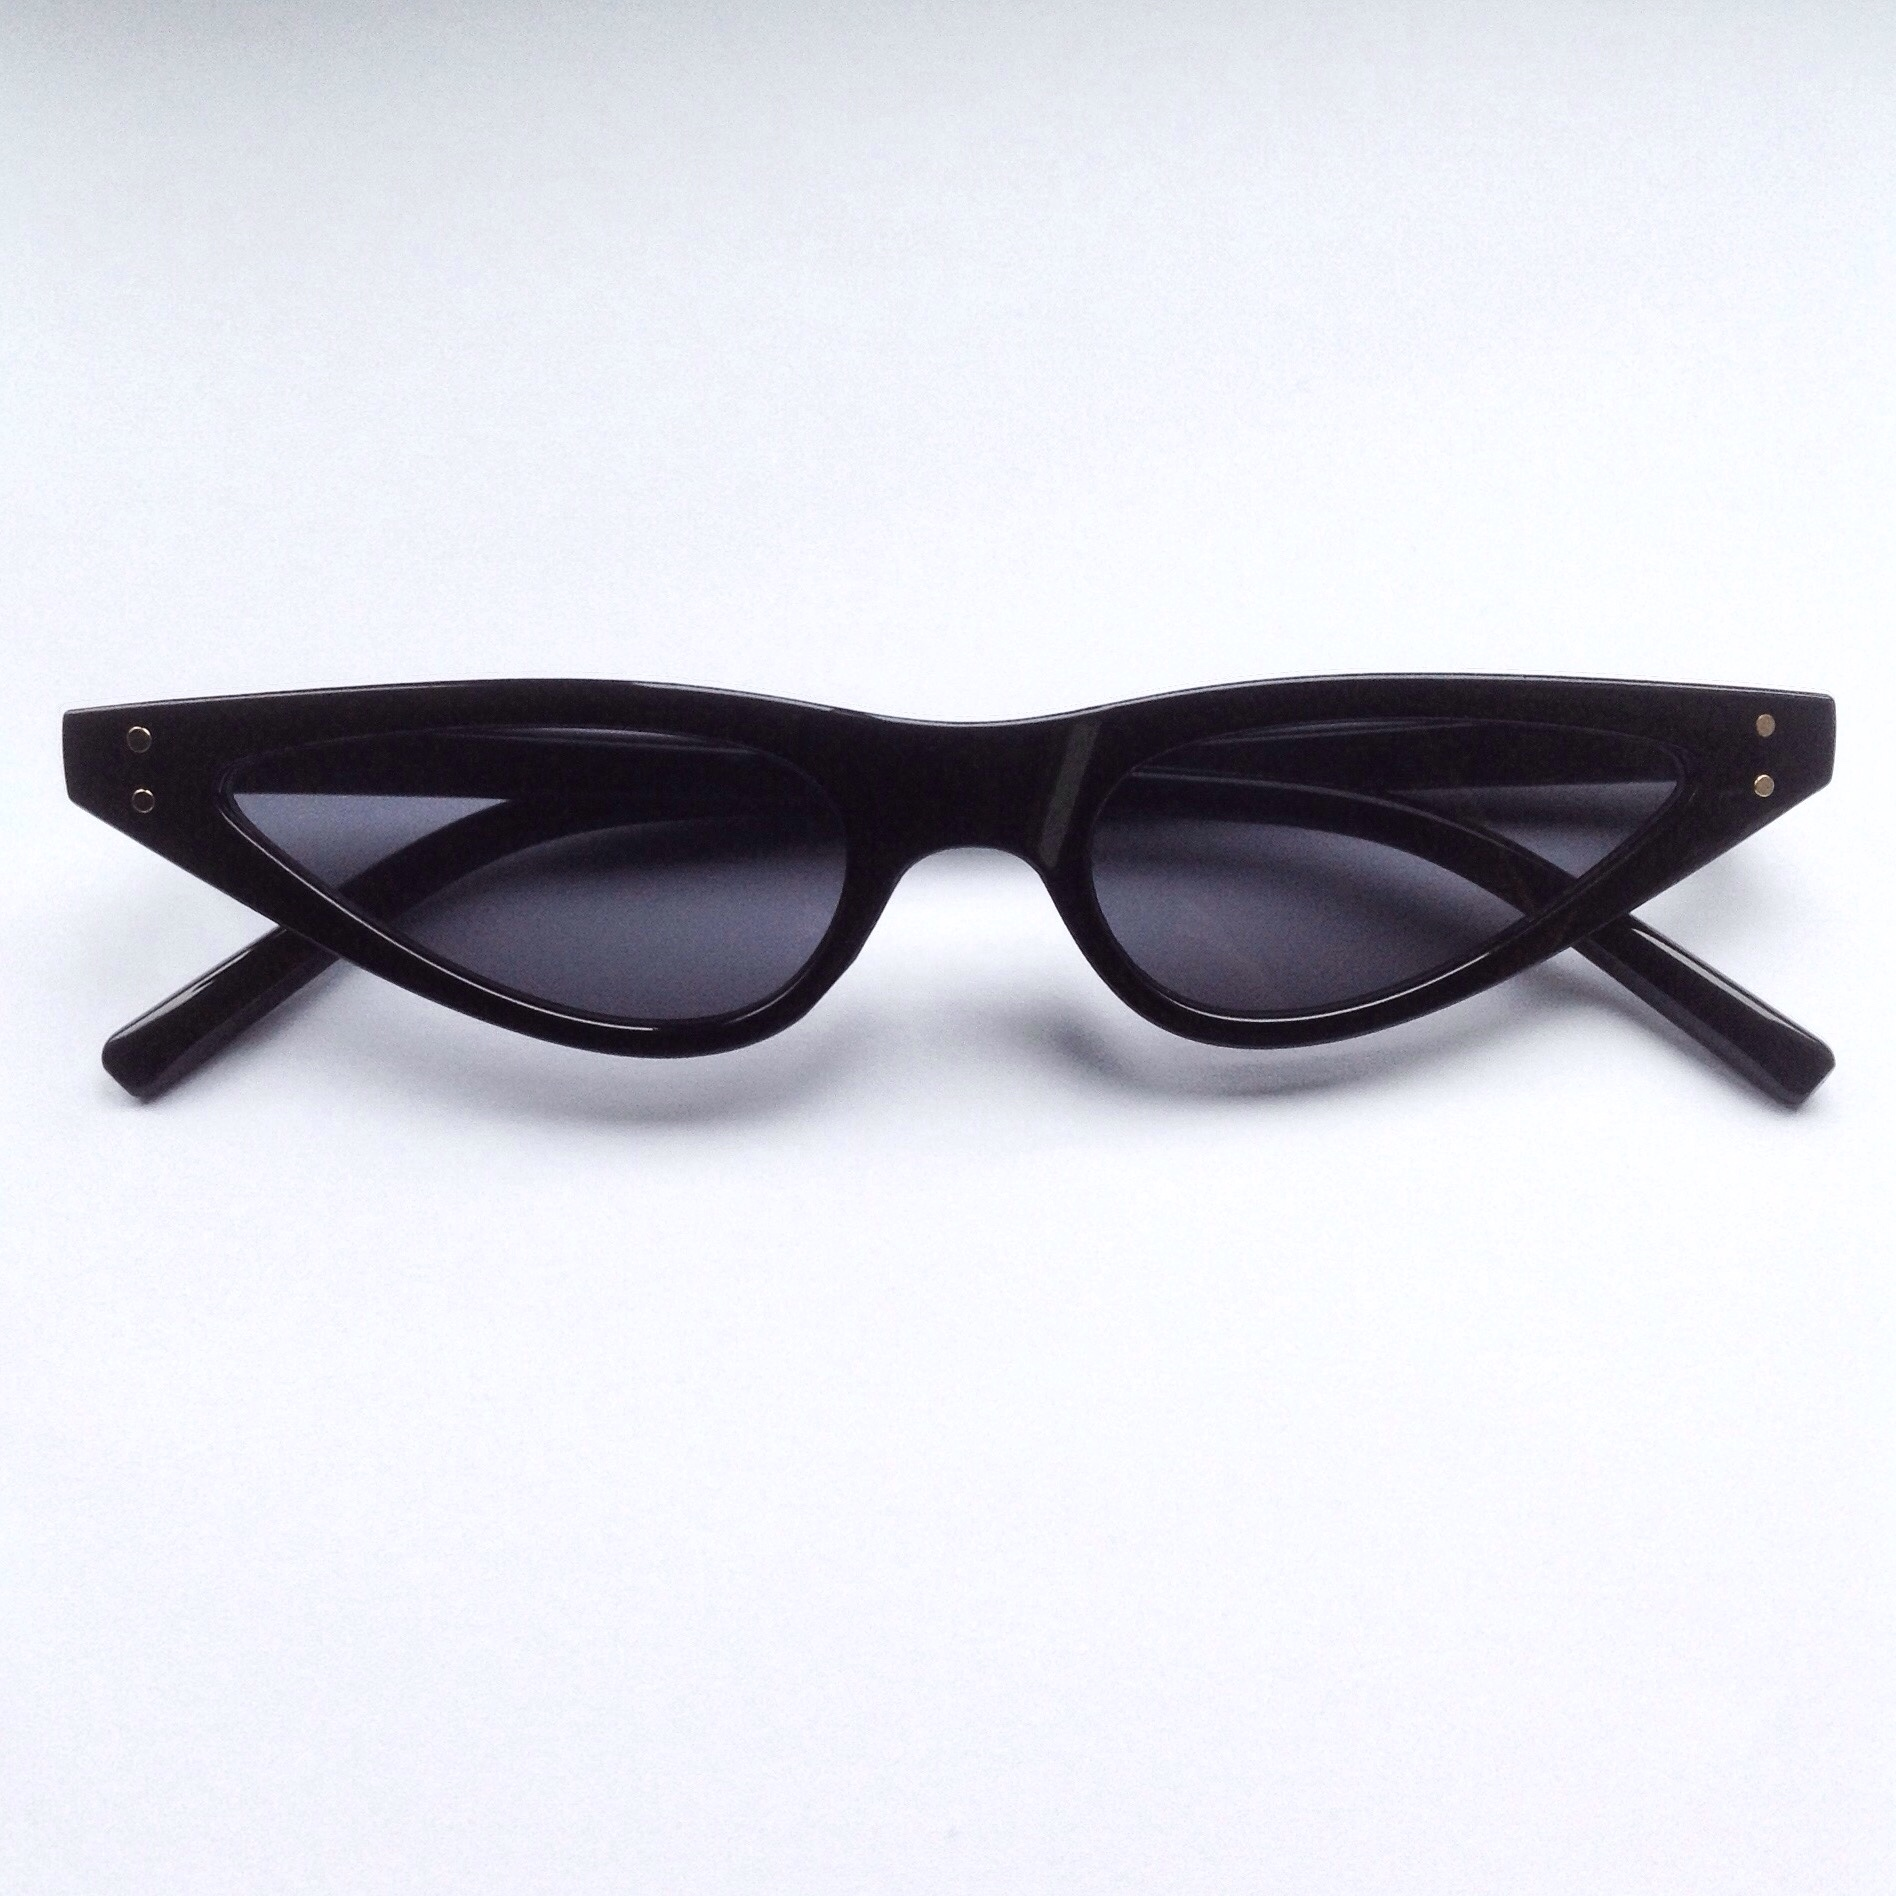 67c1188f12  neonalien. last year. United Kingdom. On trend Retro style thin small Black  Cat Eye Sunglasses ...